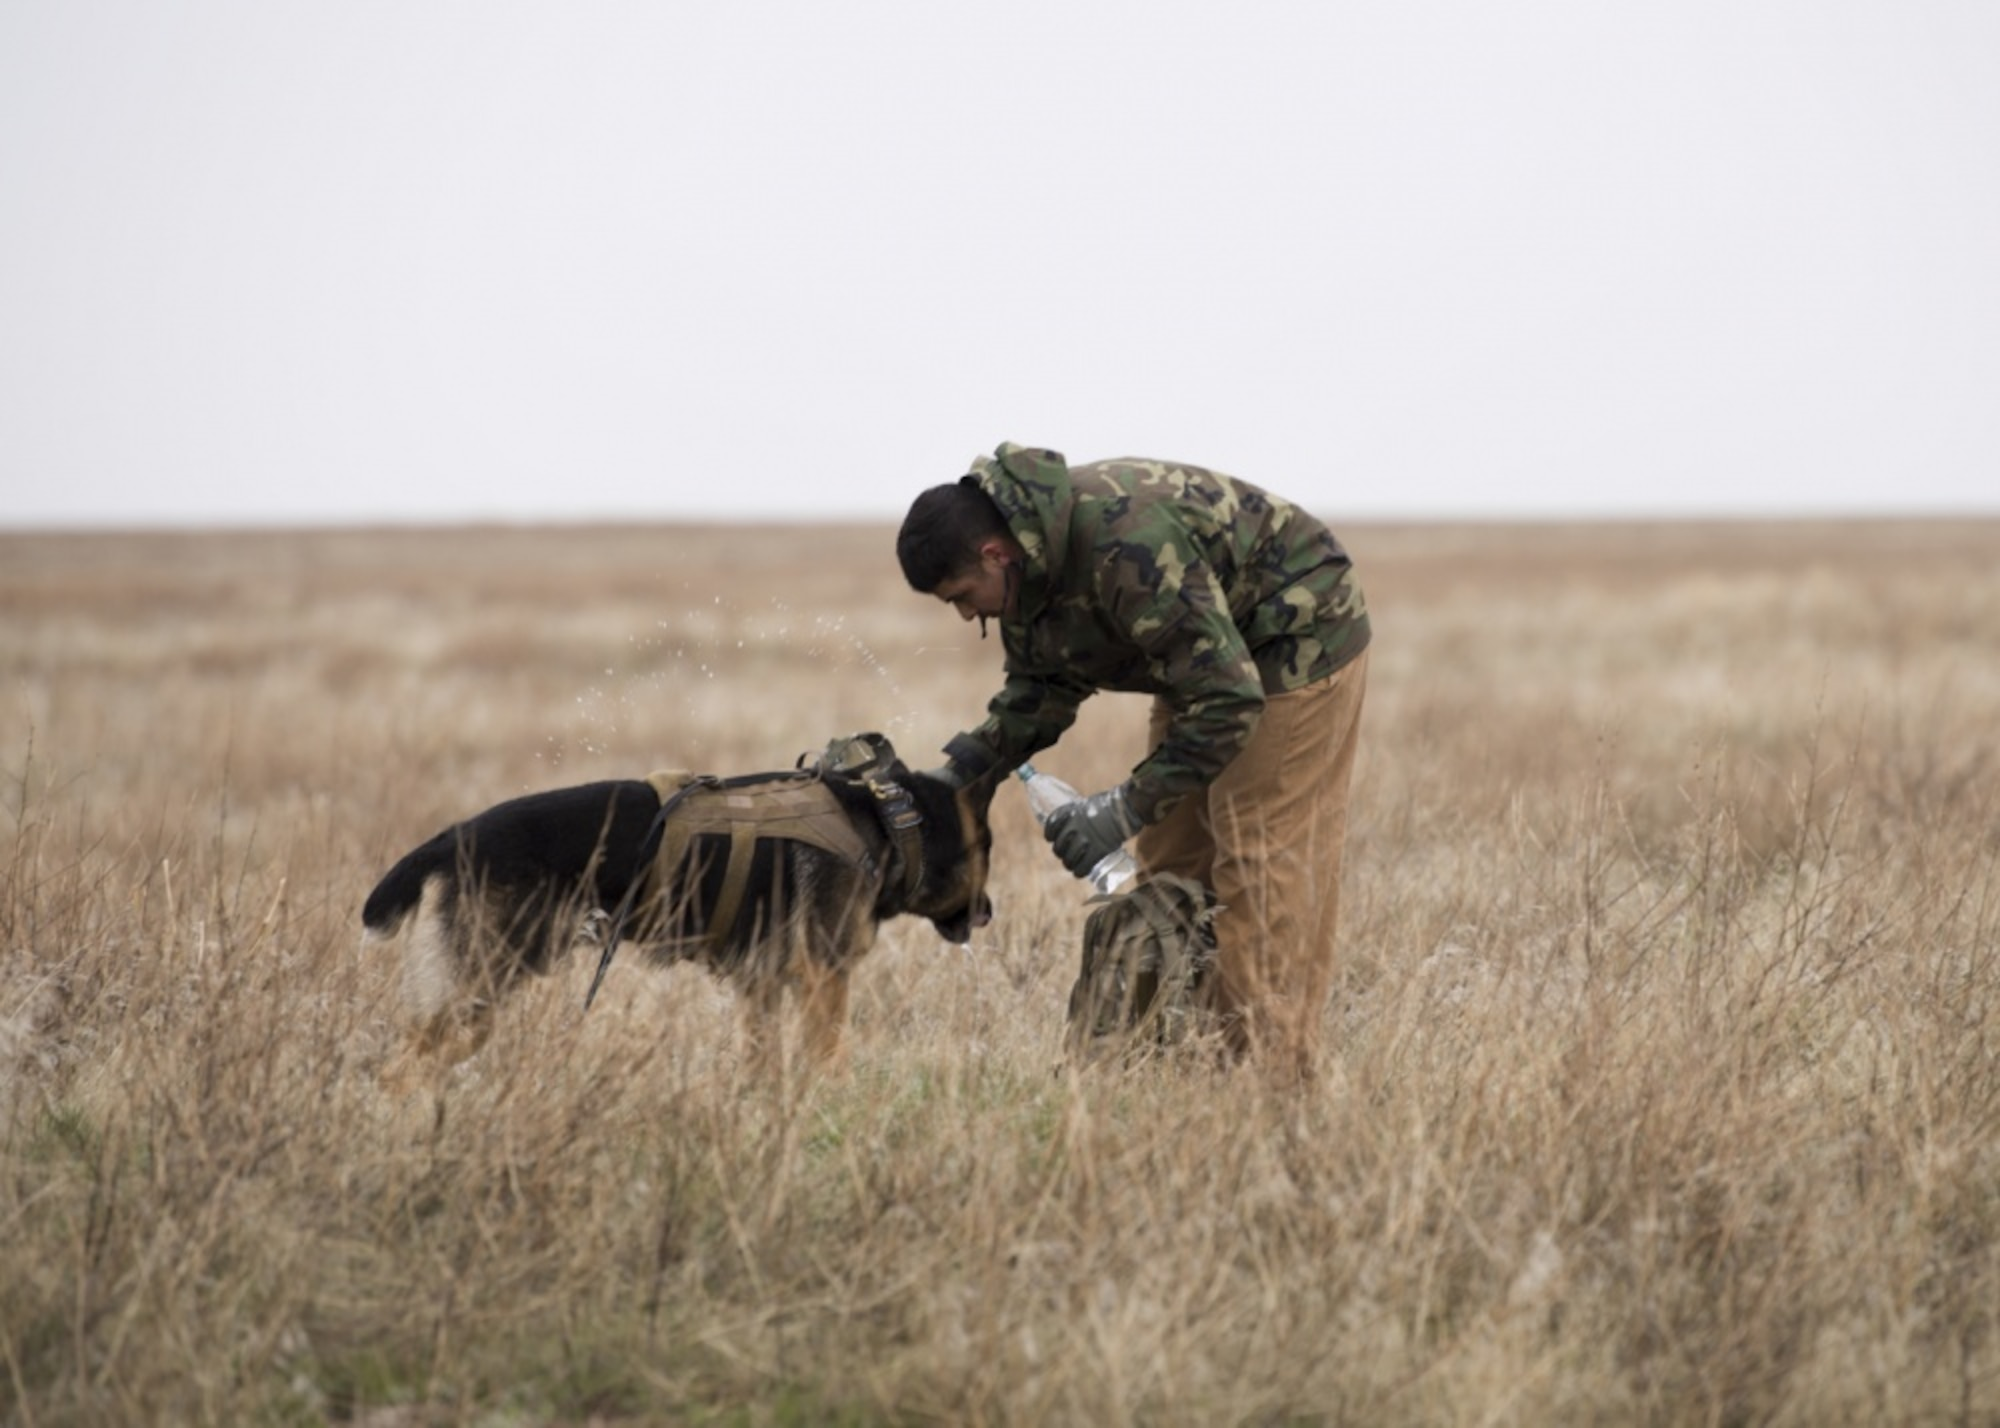 """U.S. Air Force Staff Sgt. Antonio Padilla, 366th Security Forces Squadron military working dog trainer, gives Alf, 366th SFS military working dog, a water break while acting as opposition forces to hunt down """"crashed"""" pilots during a combat search and rescue exercise April 2, 2019 at Saylor Creek Range near Mountain Home Air Force Base, Idaho. This is one aspect of the Gunfighter Flag exercise that tests the abilities of pilots to stay hidden until rescue arrives while military working dog trainers and their dogs hone their tracking ability in an expansive environment. (U.S. Air Force photo by Airman First Class Andrew Kobialka)"""